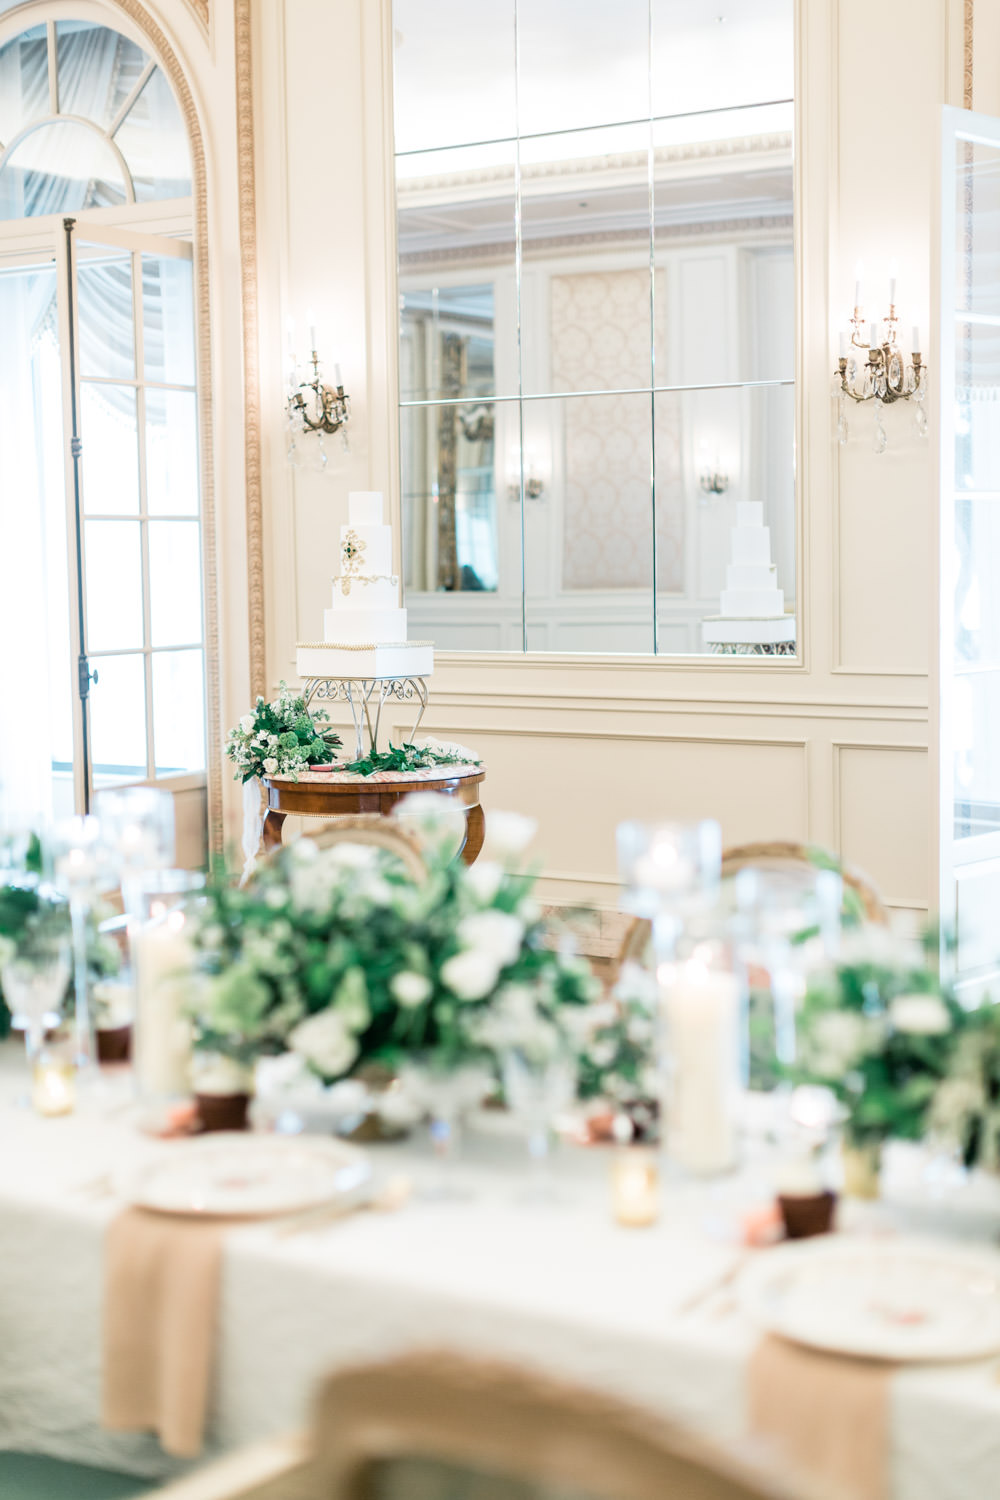 Five tier wedding cake in the reception room, The Crown Inspired Westgate Hotel Wedding in San Diego by Cavin Elizabeth Photography